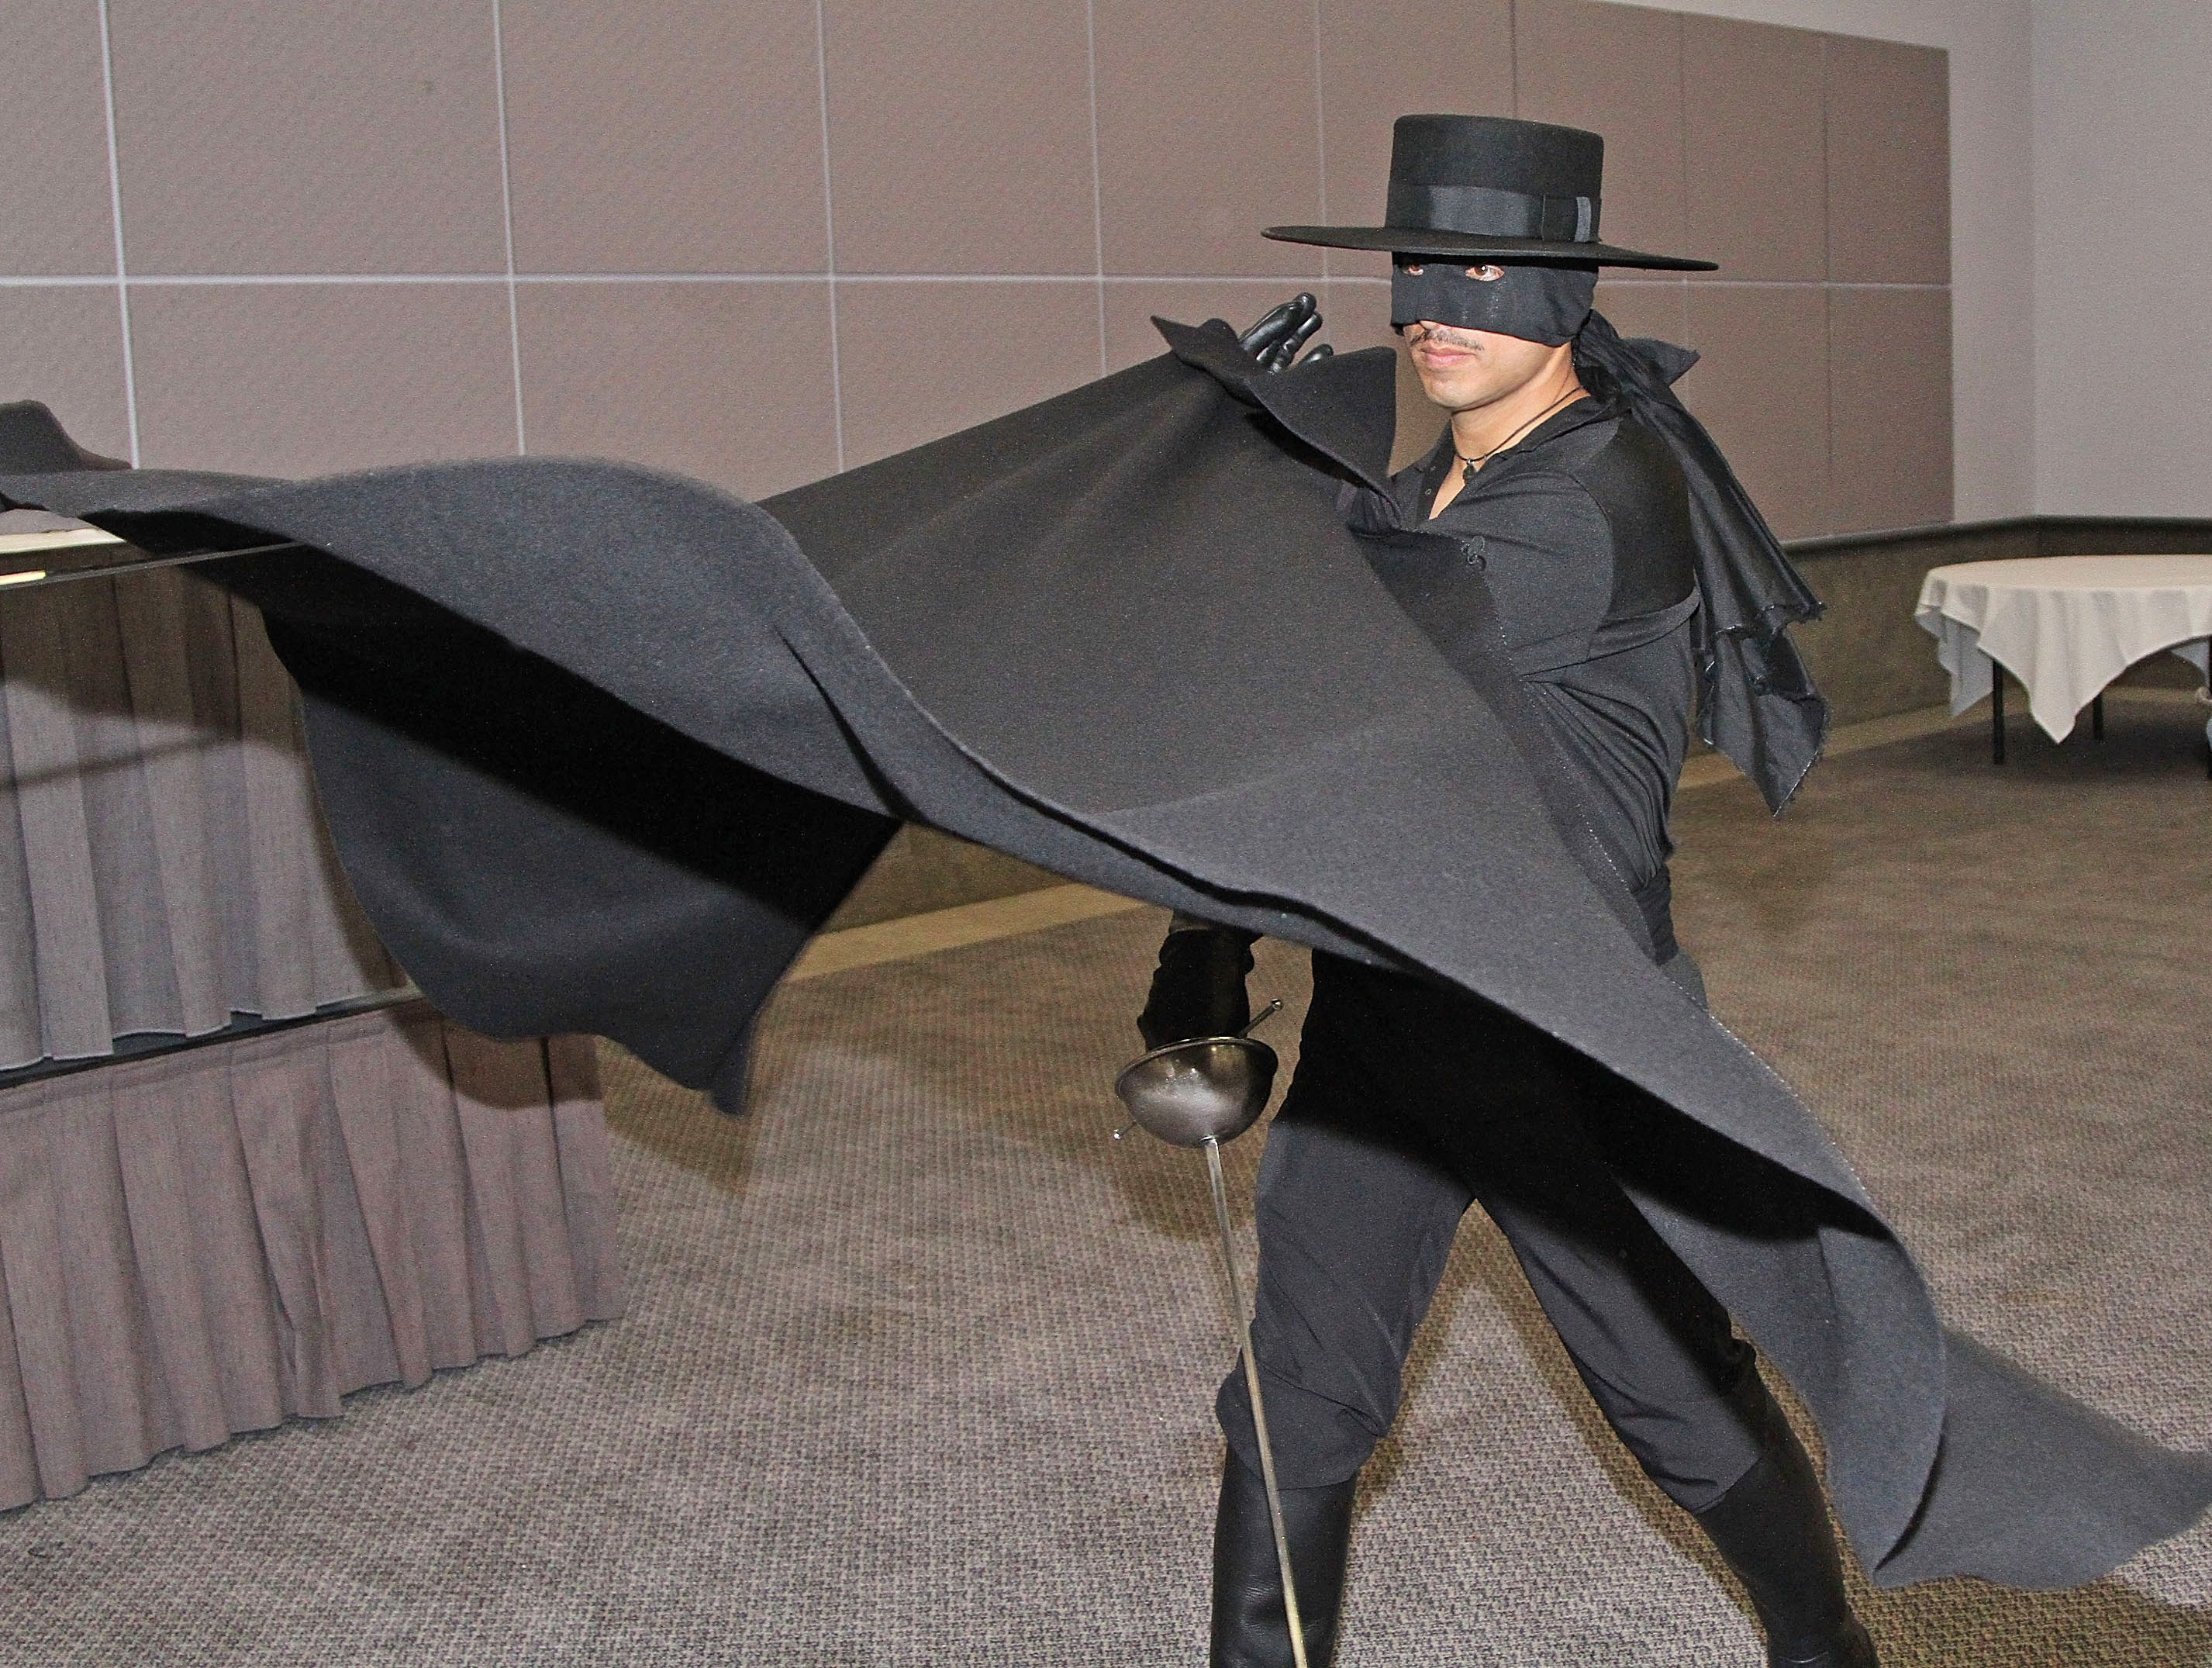 Zorro Alex Kruz Uses A Universal Parry With A Cape Flourish To